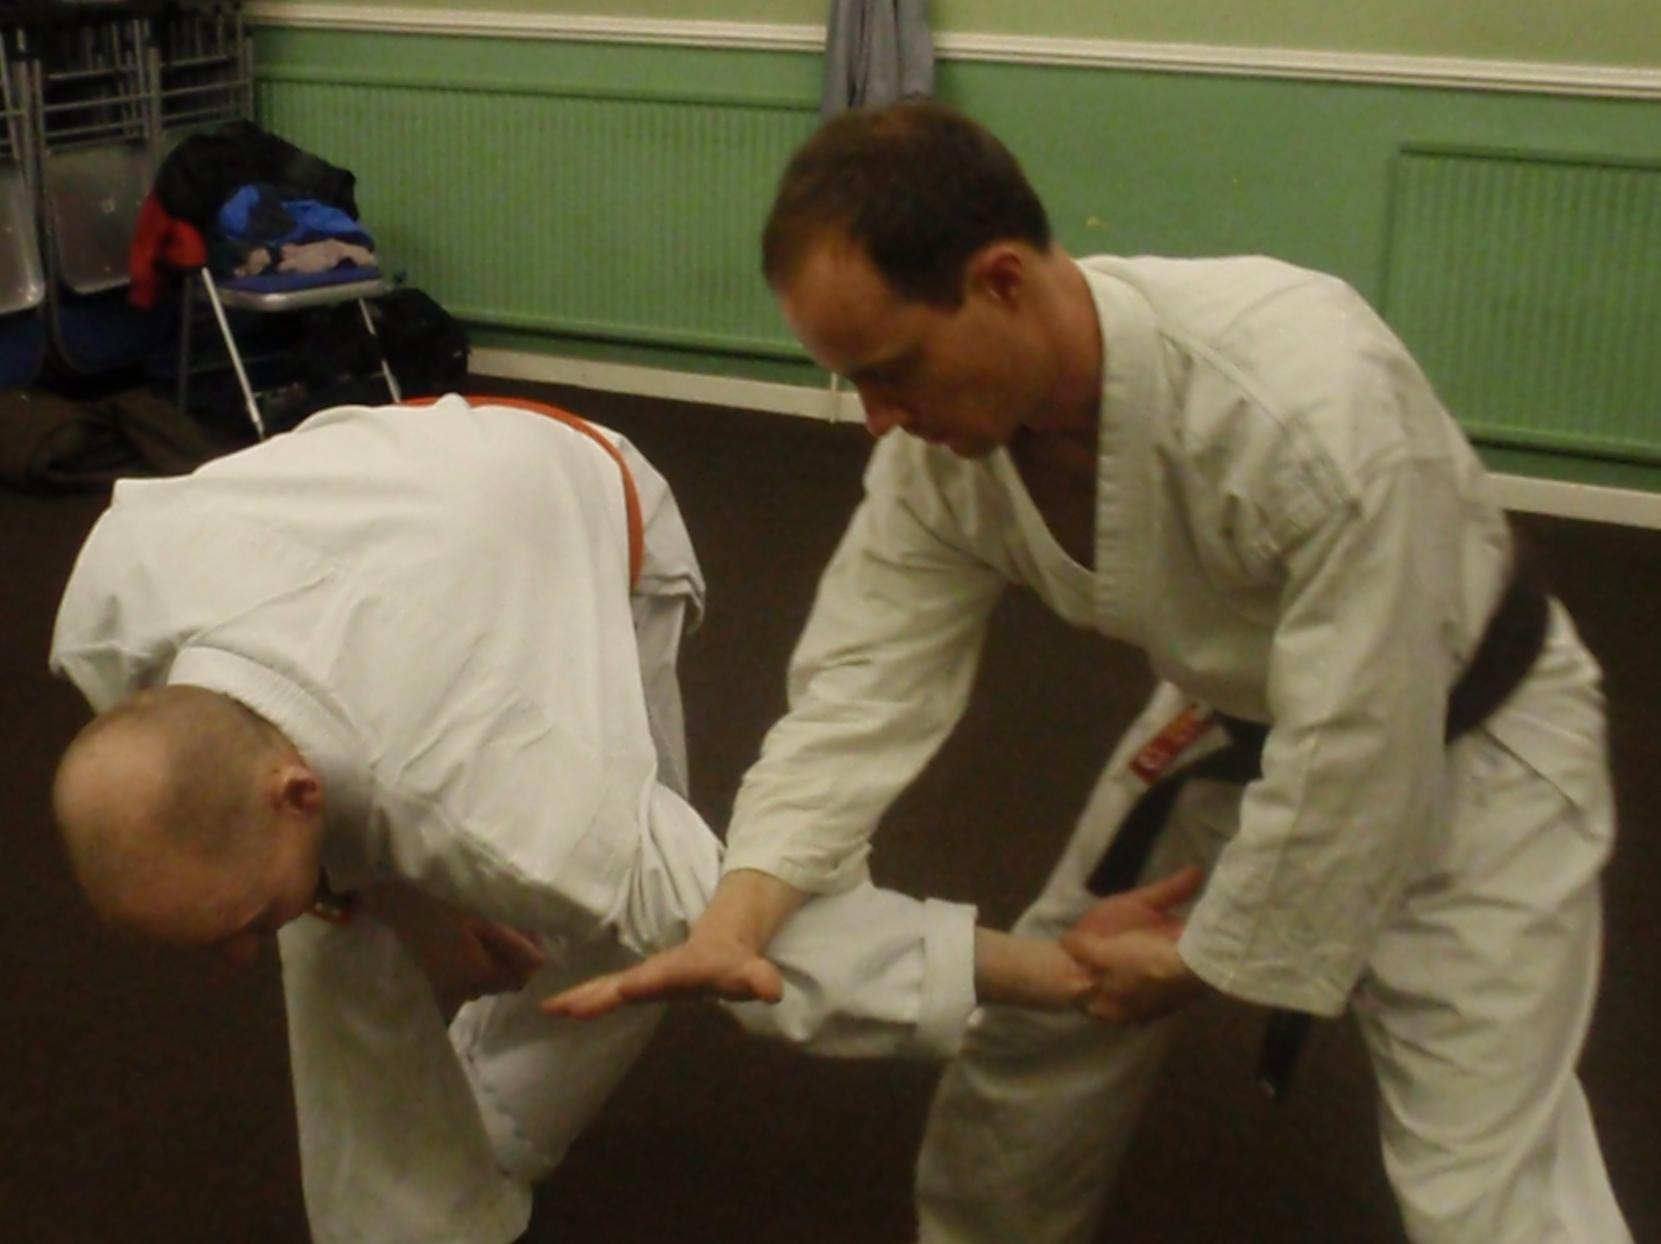 A joint-lock/takedown taught by Funakoshi in the 1920's